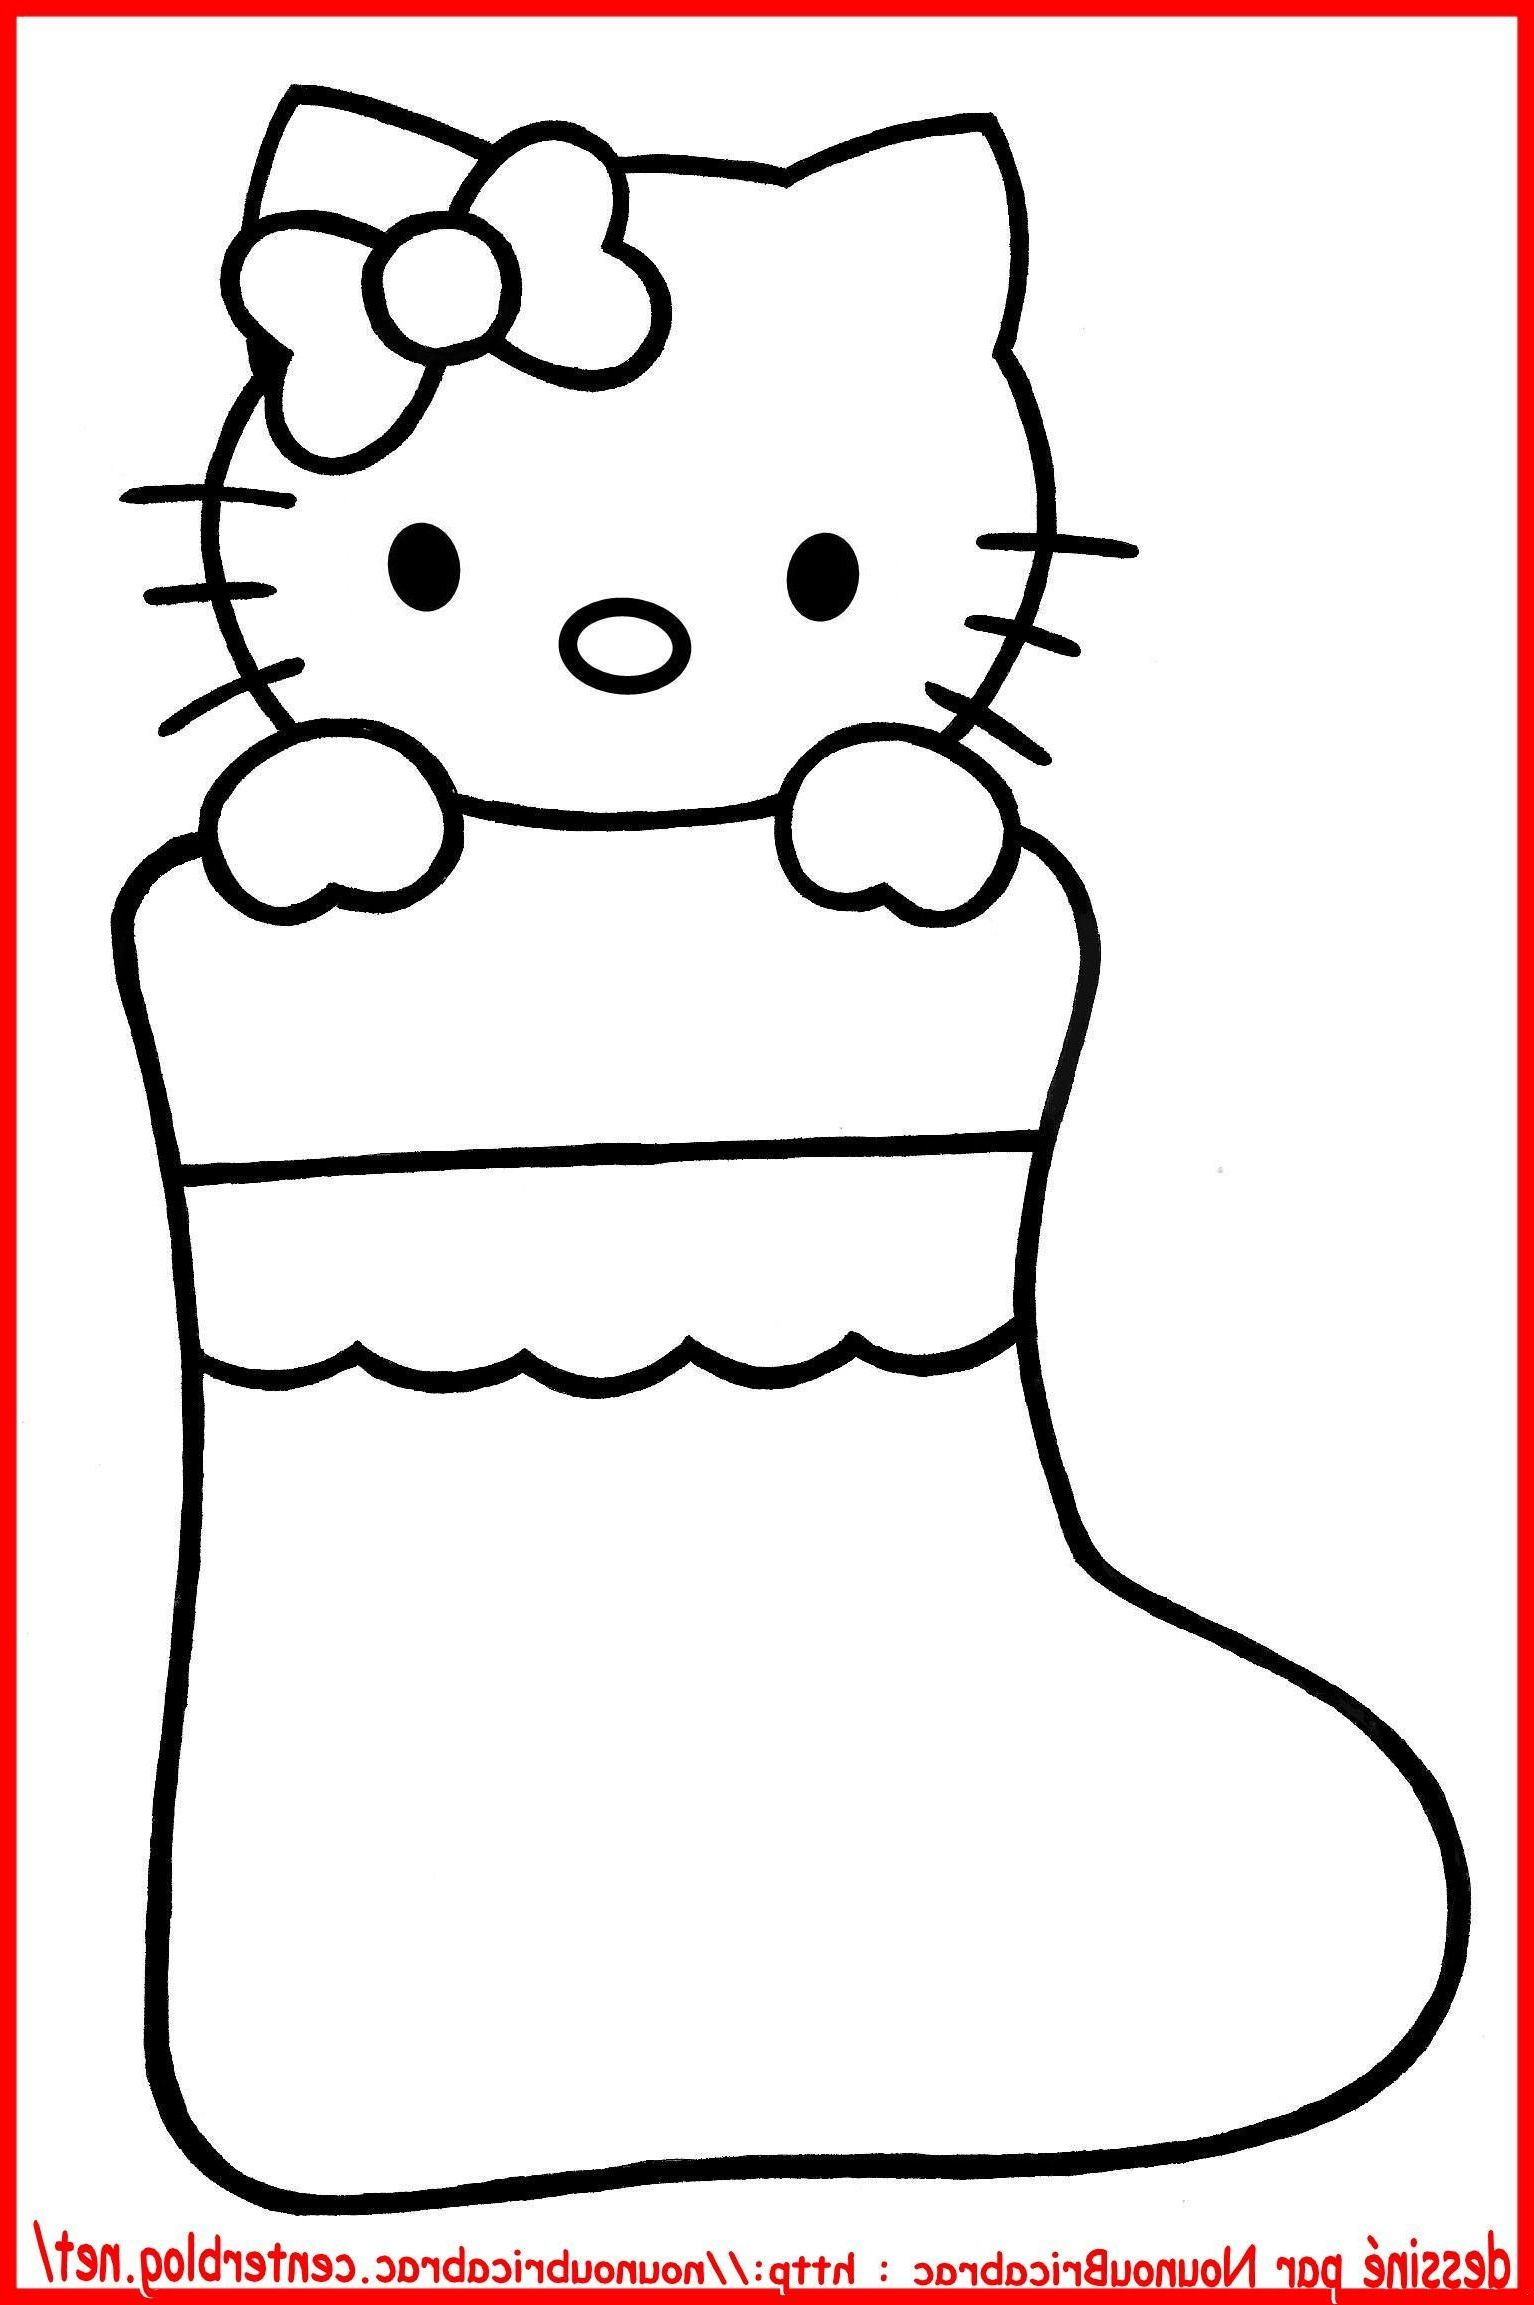 Apprendre A Dessiner Hello Kitty | Hello Kitty, Kitty, Character avec Hello Kitty À Dessiner